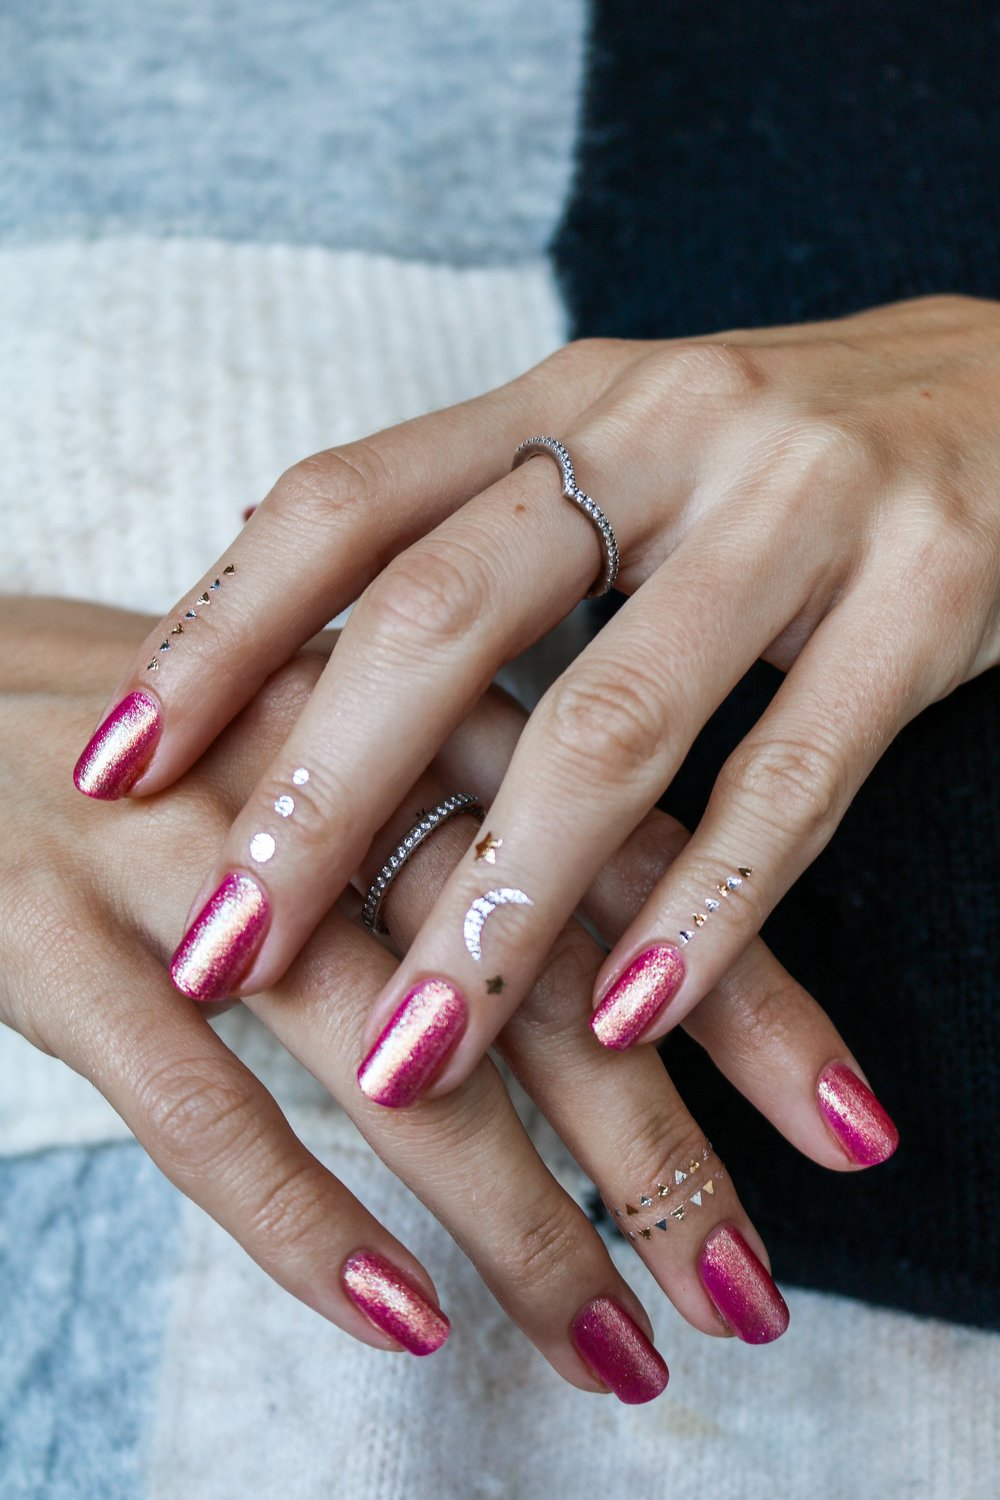 The+Hungarian+Brunette+Urban+Outfitter+nail+polish+in+Damsel+-+sparkly+pink+with+gold+undertones+%281+of+6%29.jpg